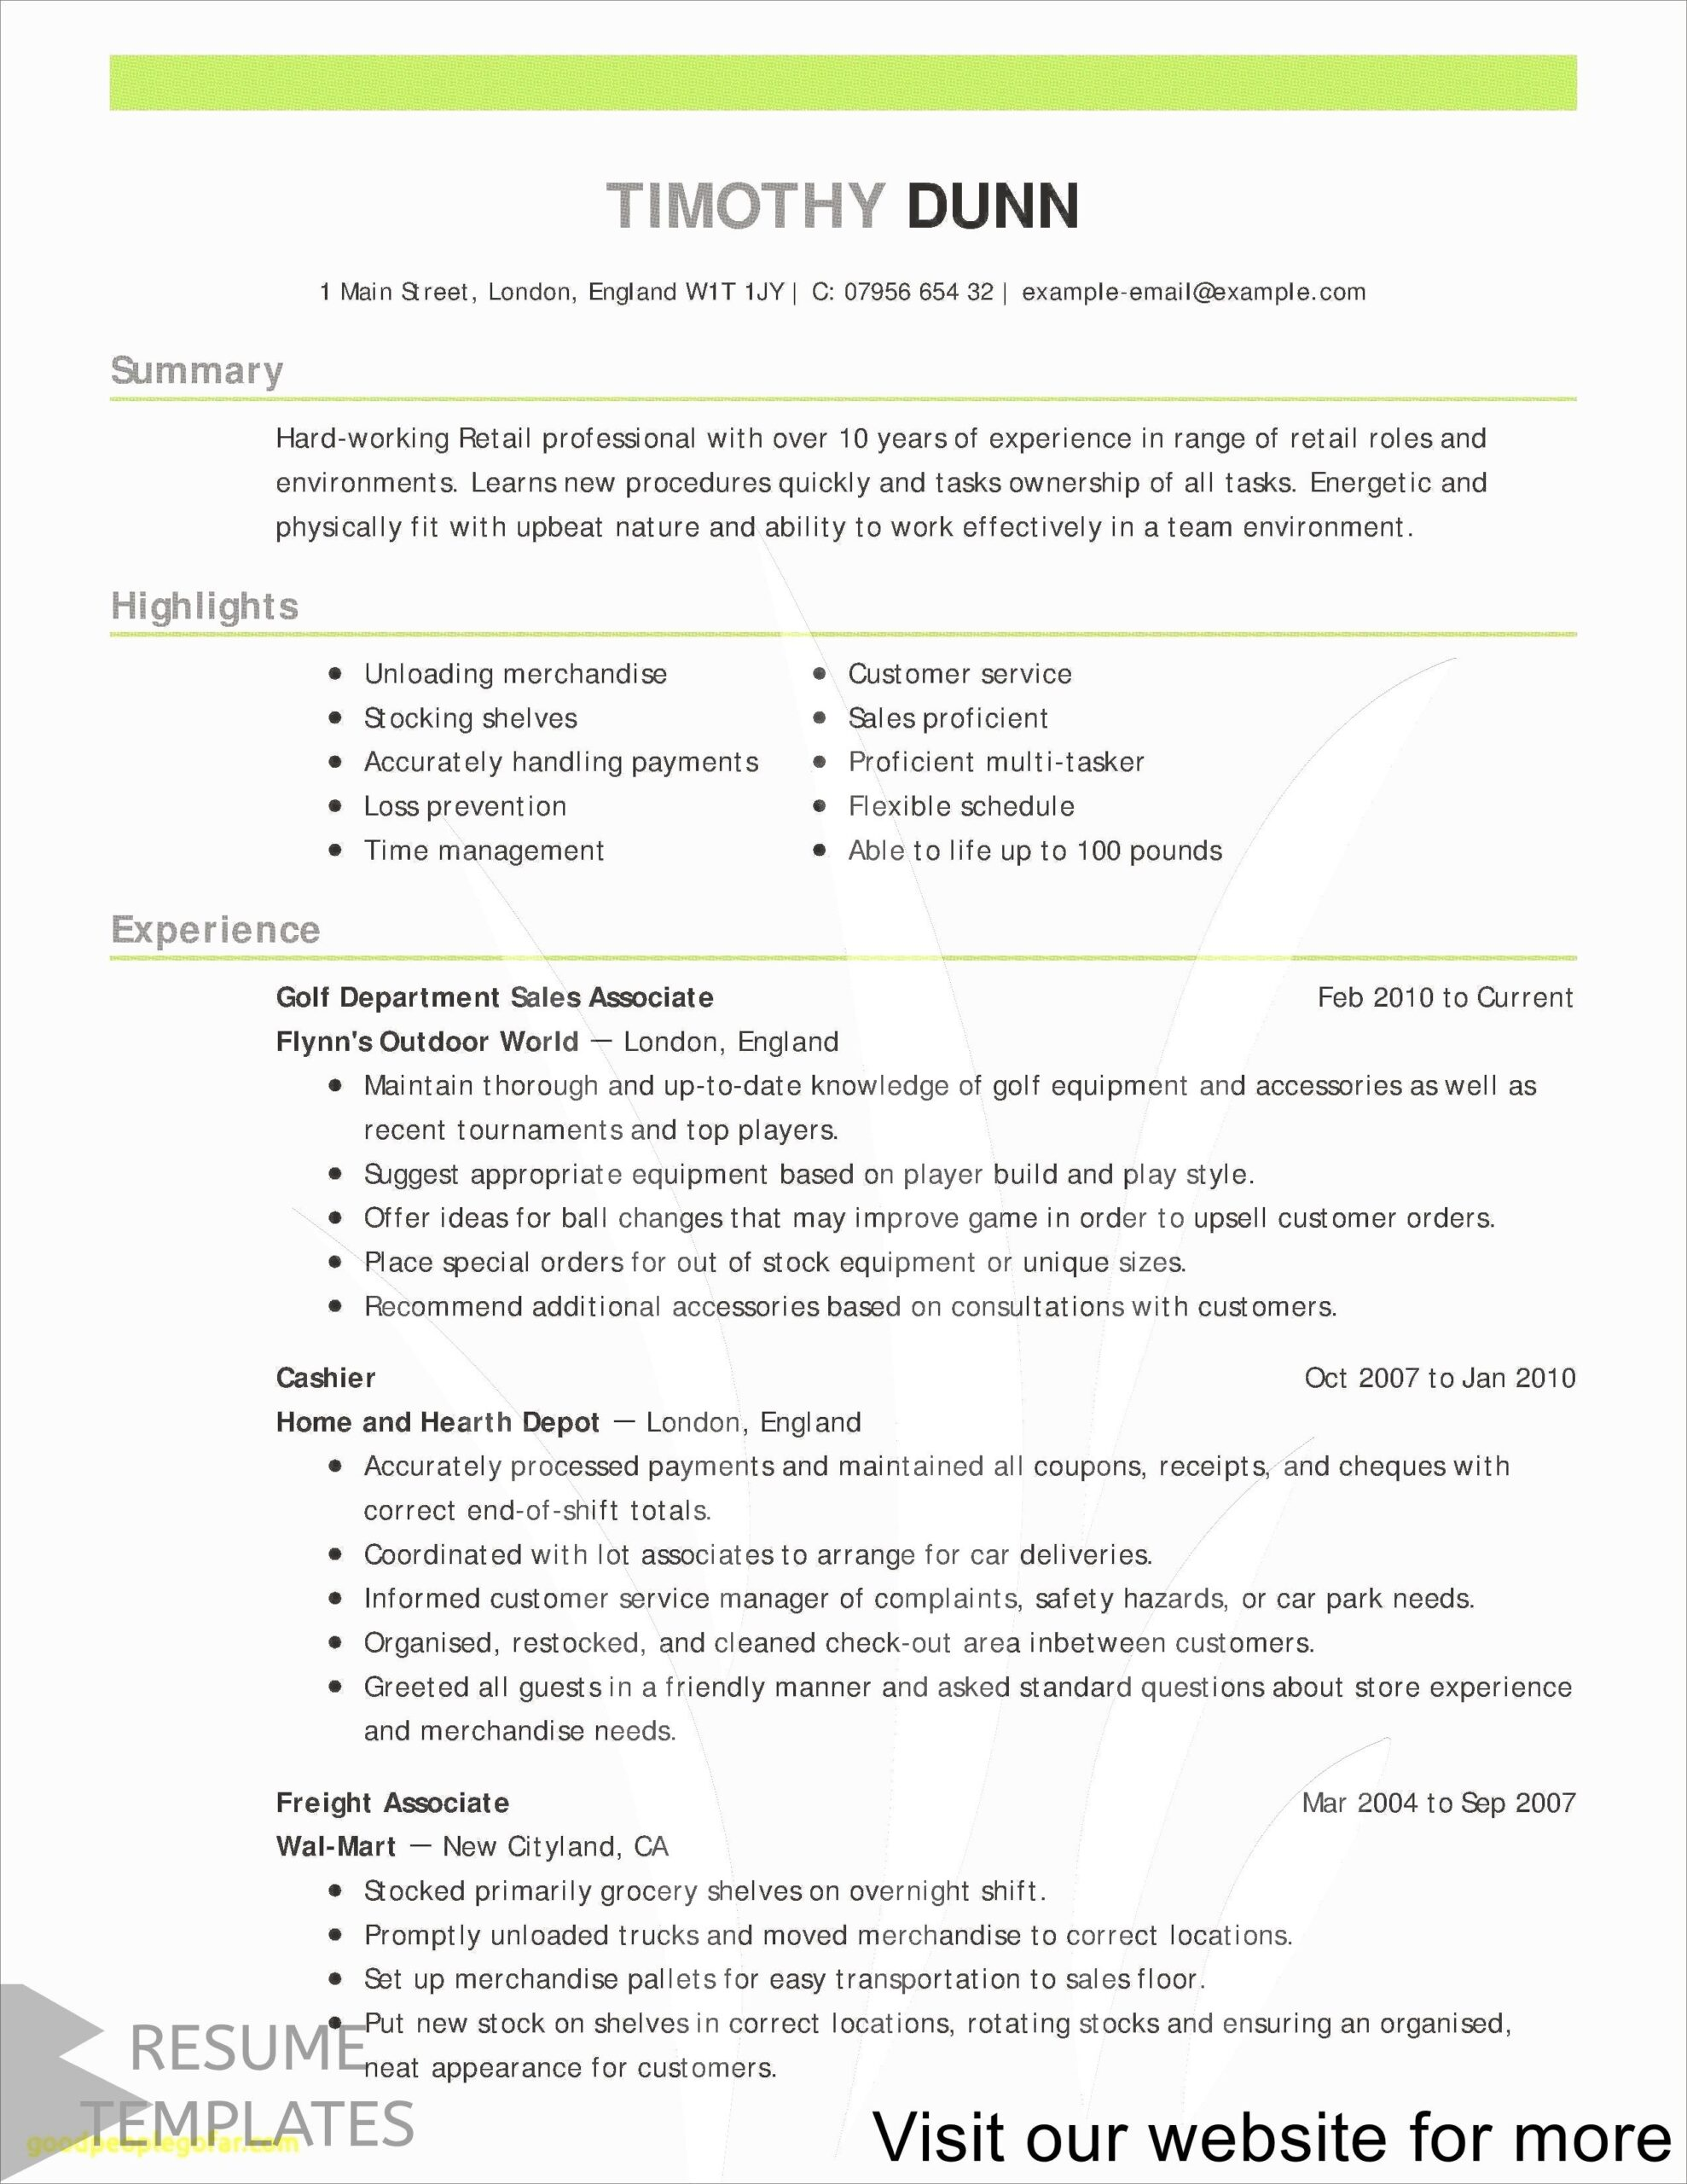 resume builder software professional template examples best format writing tips flight Resume Resume Writing Tips 2020